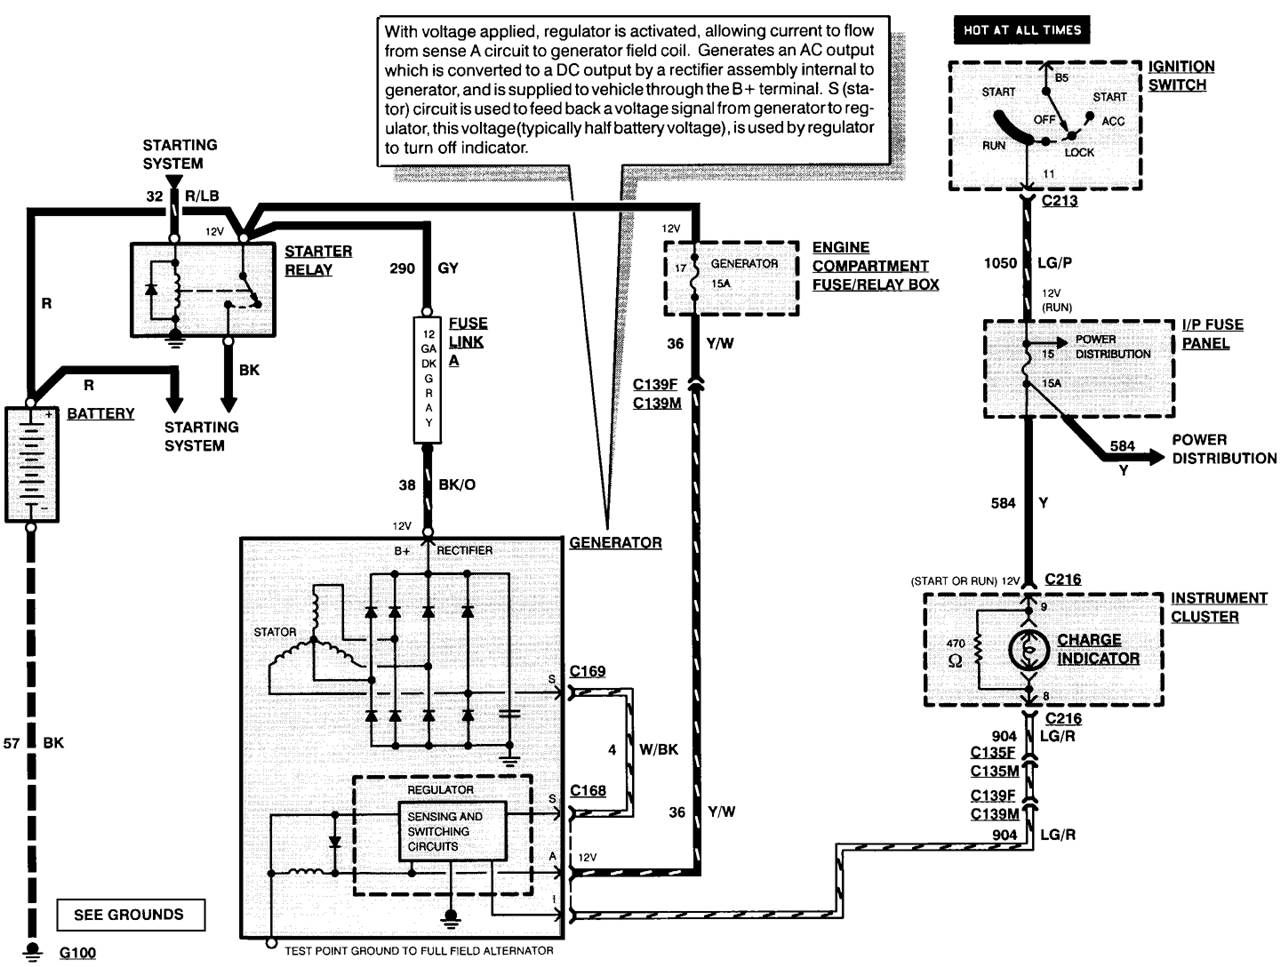 Ford Alternator Wiring Diagrams on ford 1-wire alternator conversion, ford alternator wiring hook up, ford alternator system, ford truck alternator diagram, ford charging system diagrams, ford 6g alternator wiring, ford 3g alternator wiring, ford voltage regulator, alternator parts diagram, ford alternator wiring harness, ford alternator pinout, ford 6.0 alternator, ford 1 wire alternator wiring, ford alternator identification, ford starter relay, ford alternator connections, ford truck wiring diagrams, ford g3 alternator, ford alternator regulator diagram, ford 3 wire alternator diagram,